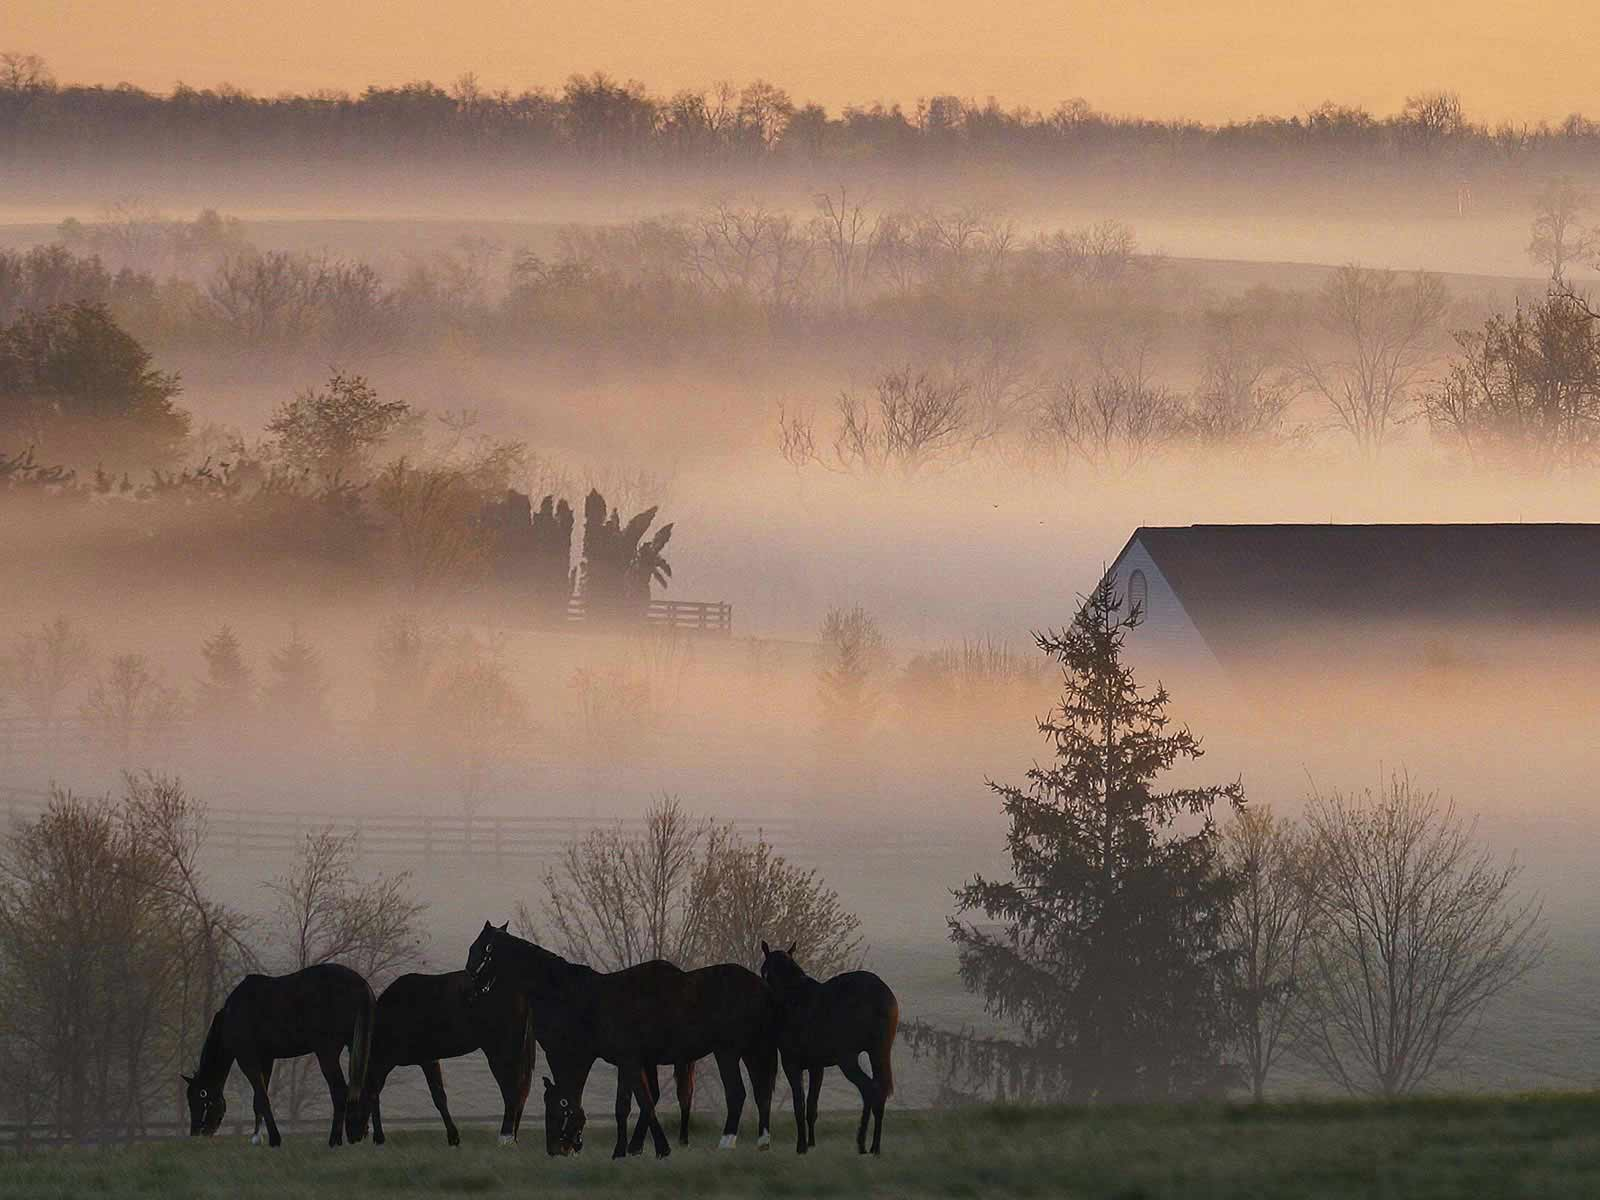 desktop wallpaper a· gallery a· travels a· foggy horse farm free